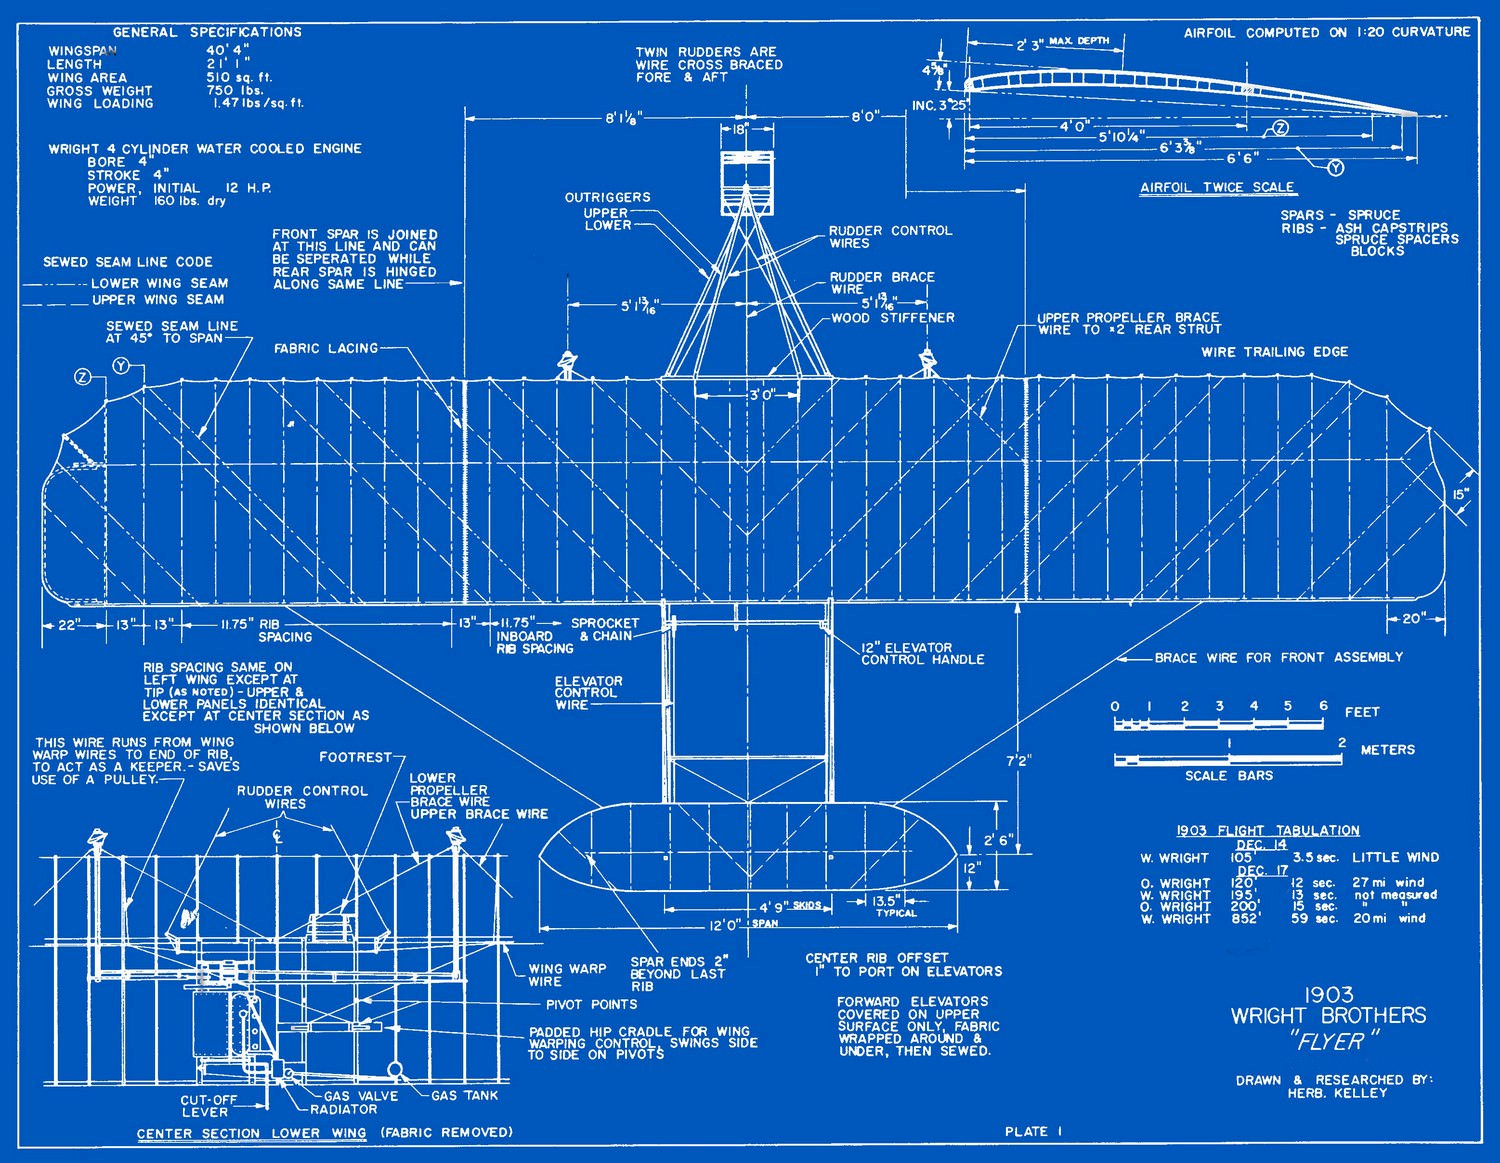 1903-Wright-Flyer-Blueprints-Free-Download